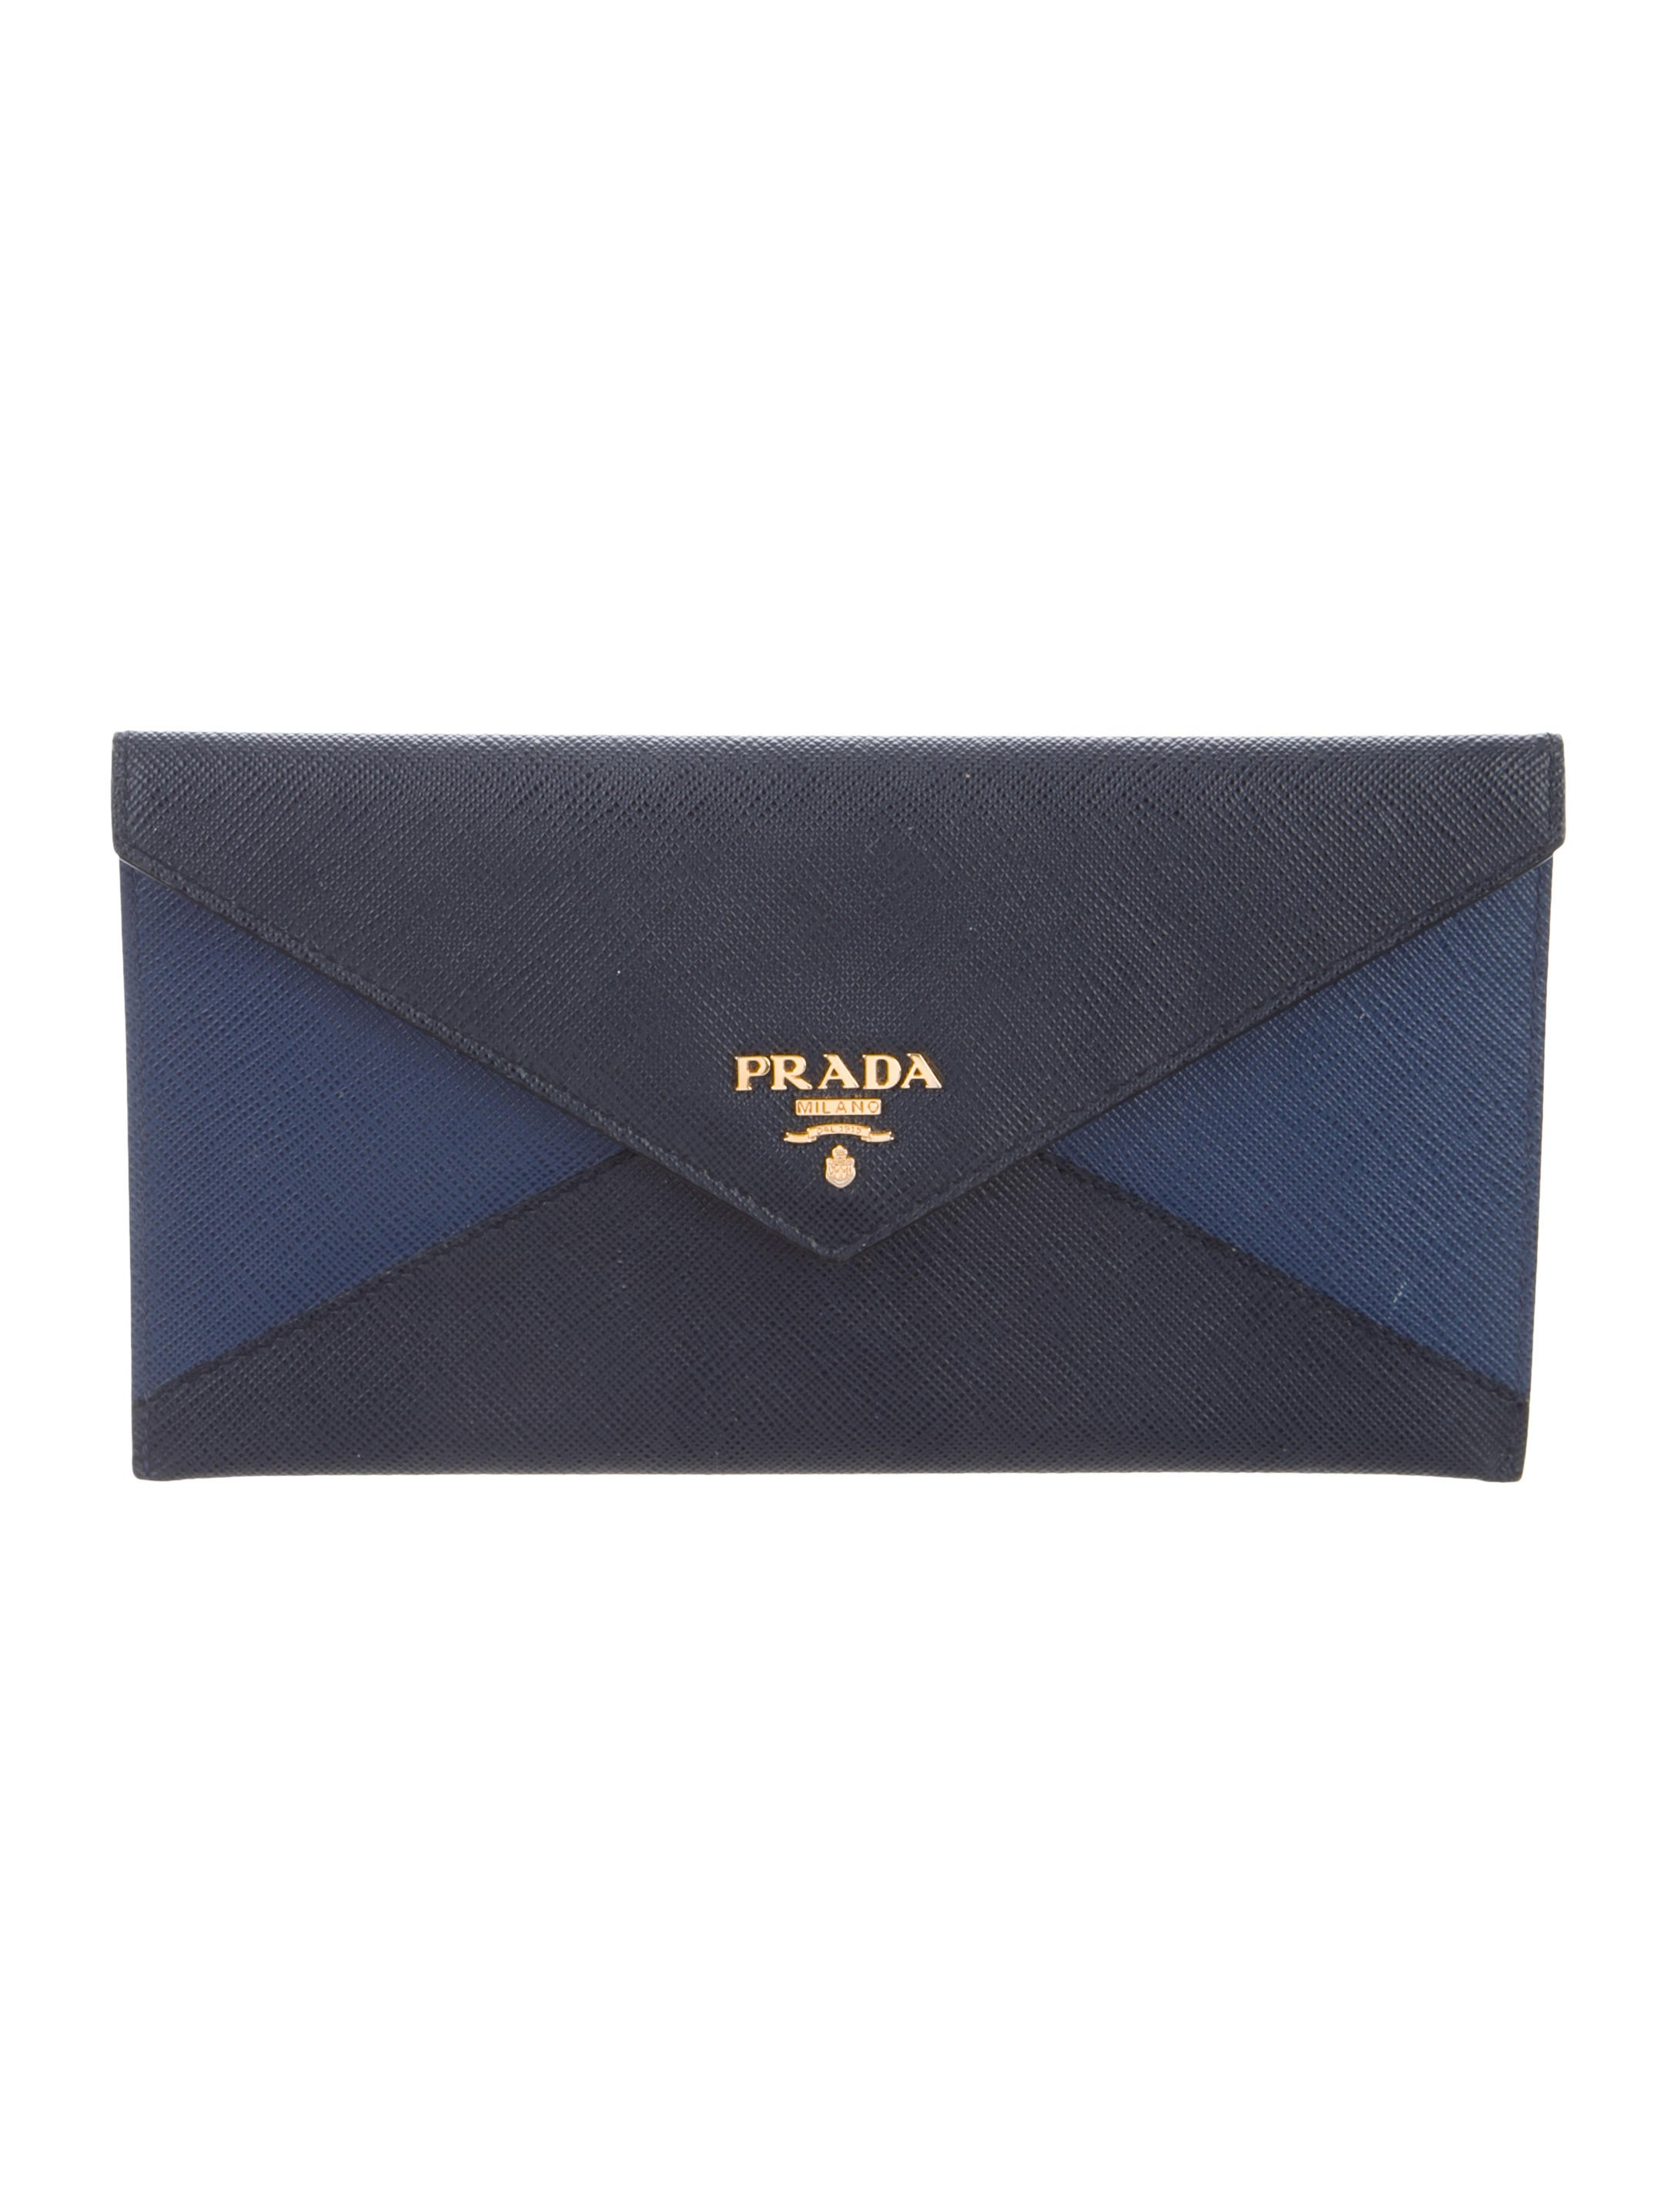 b30174bfbbd2f5 Prada Saffiano Bicolor Envelope Wallet - Accessories - PRA250461 ...